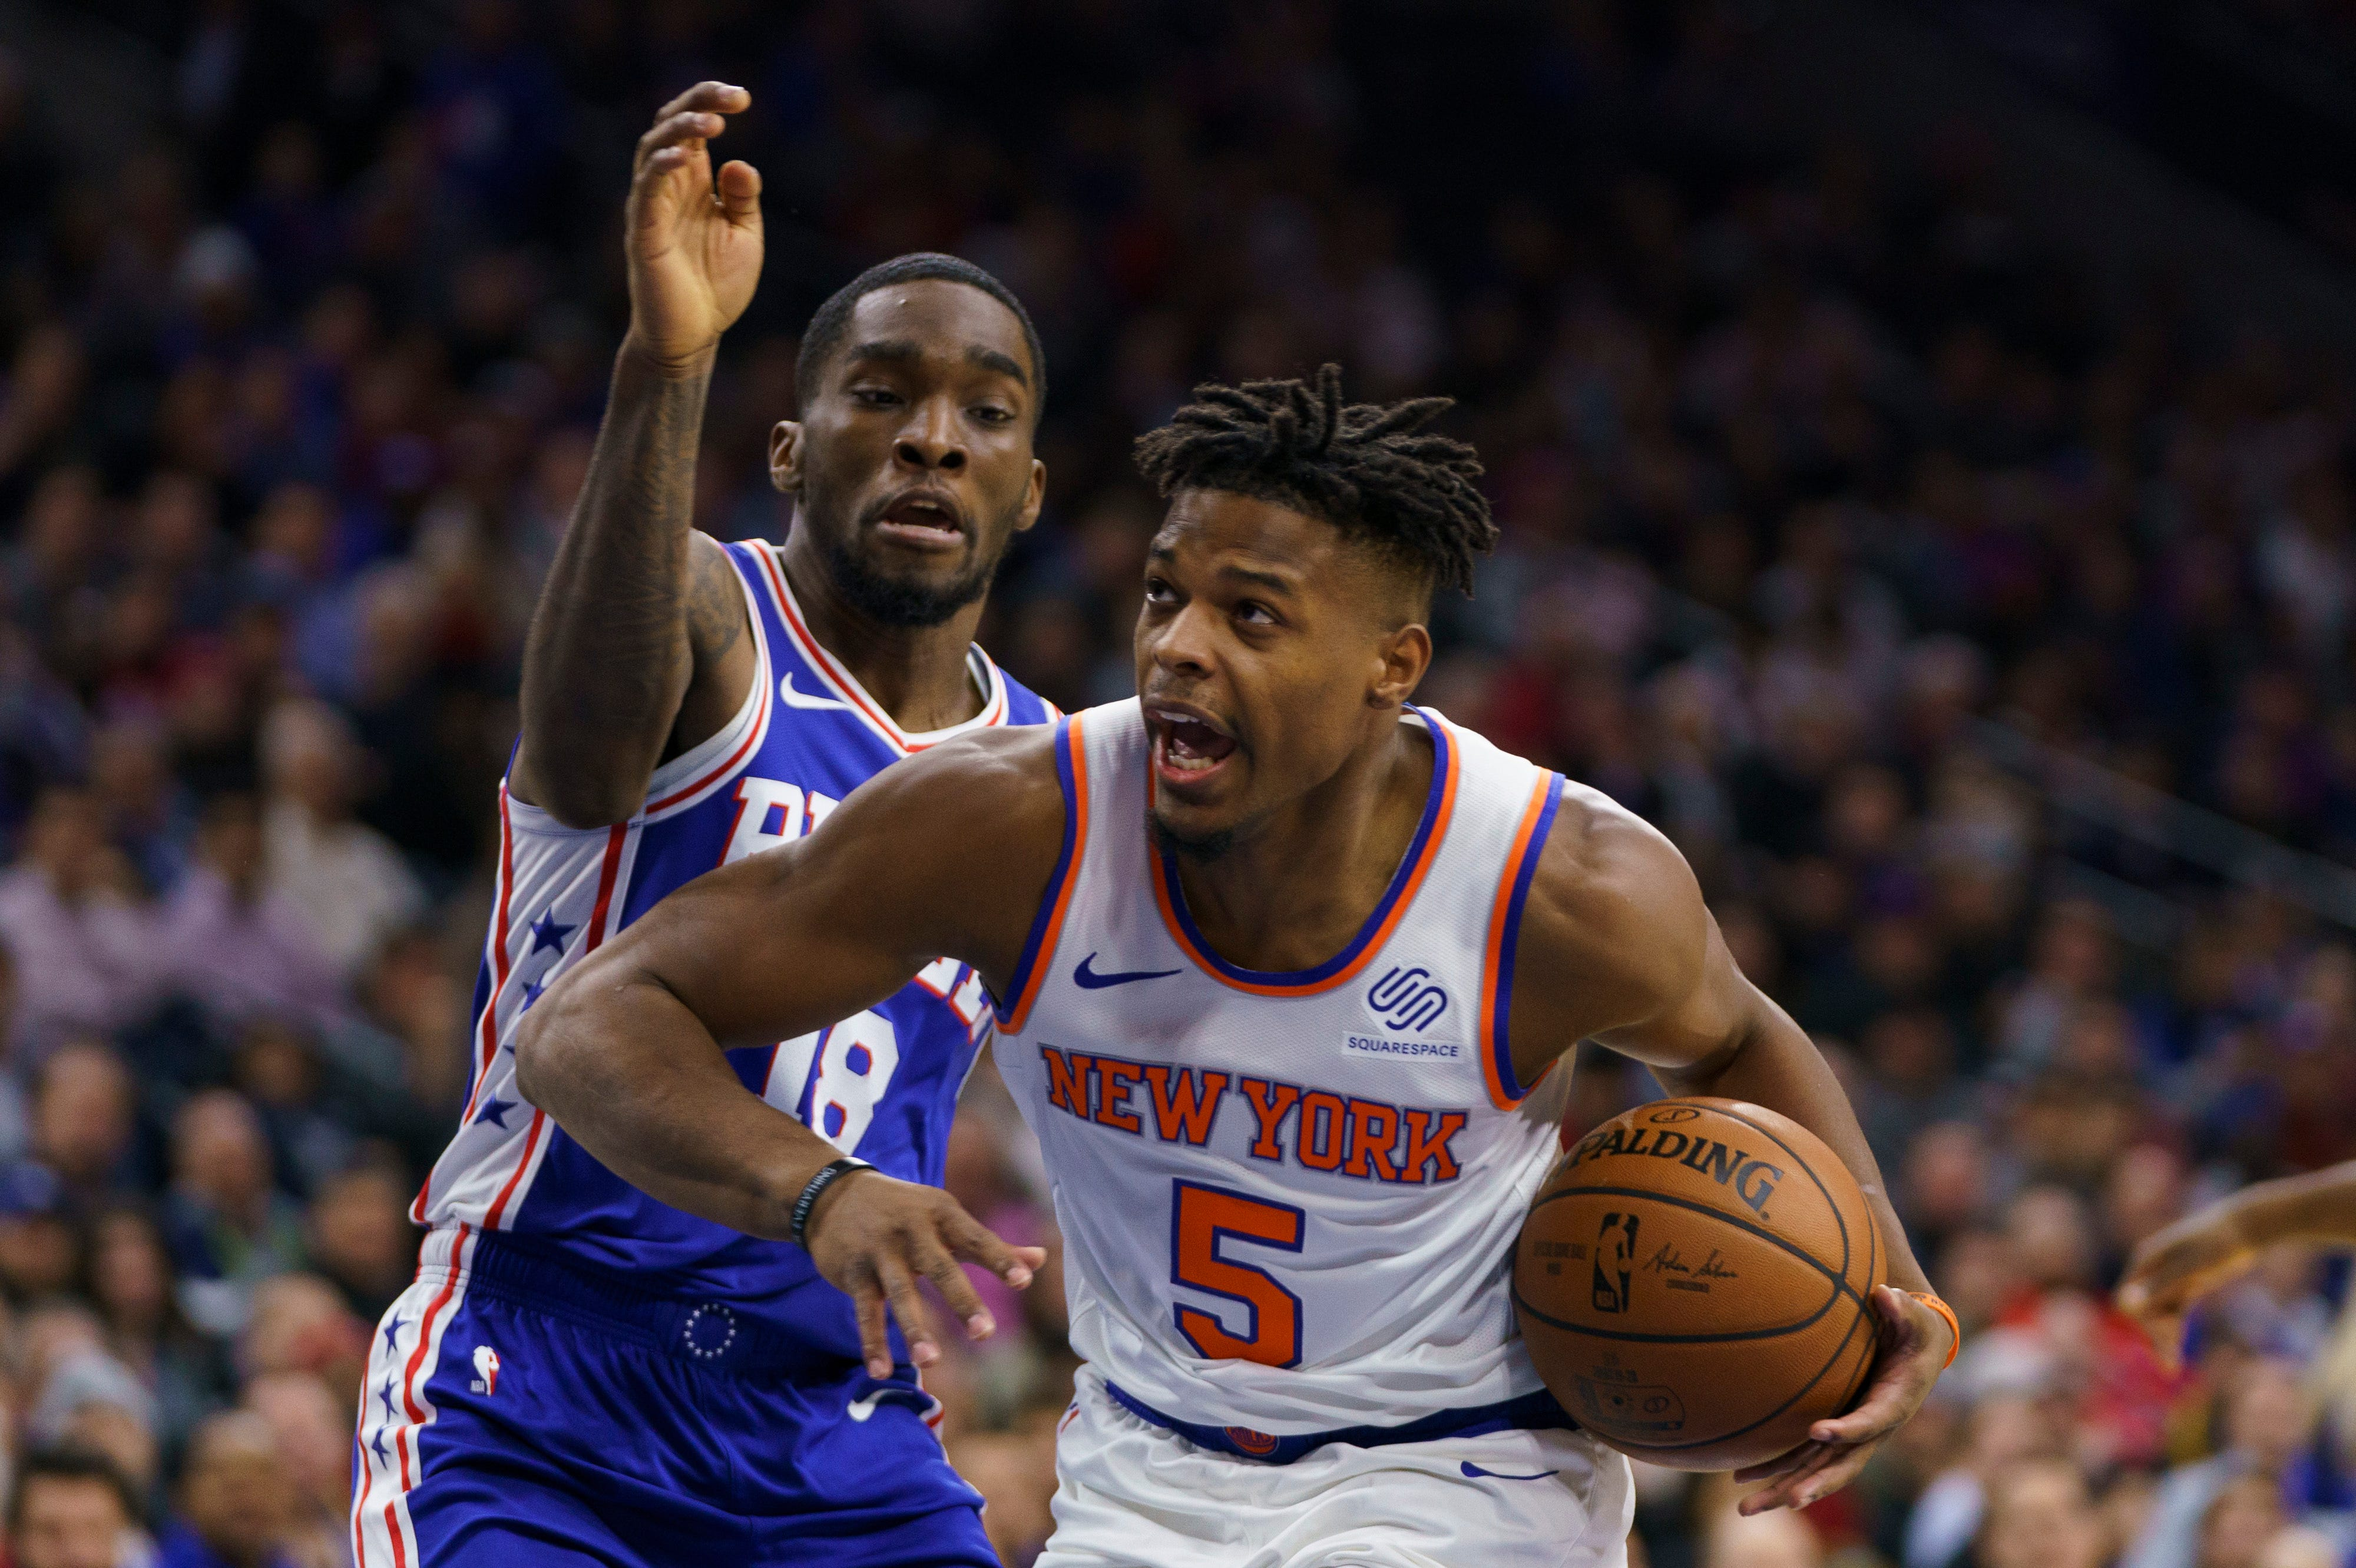 Frank Ntilikina is playing freely for New York Knicks, and the results are clear